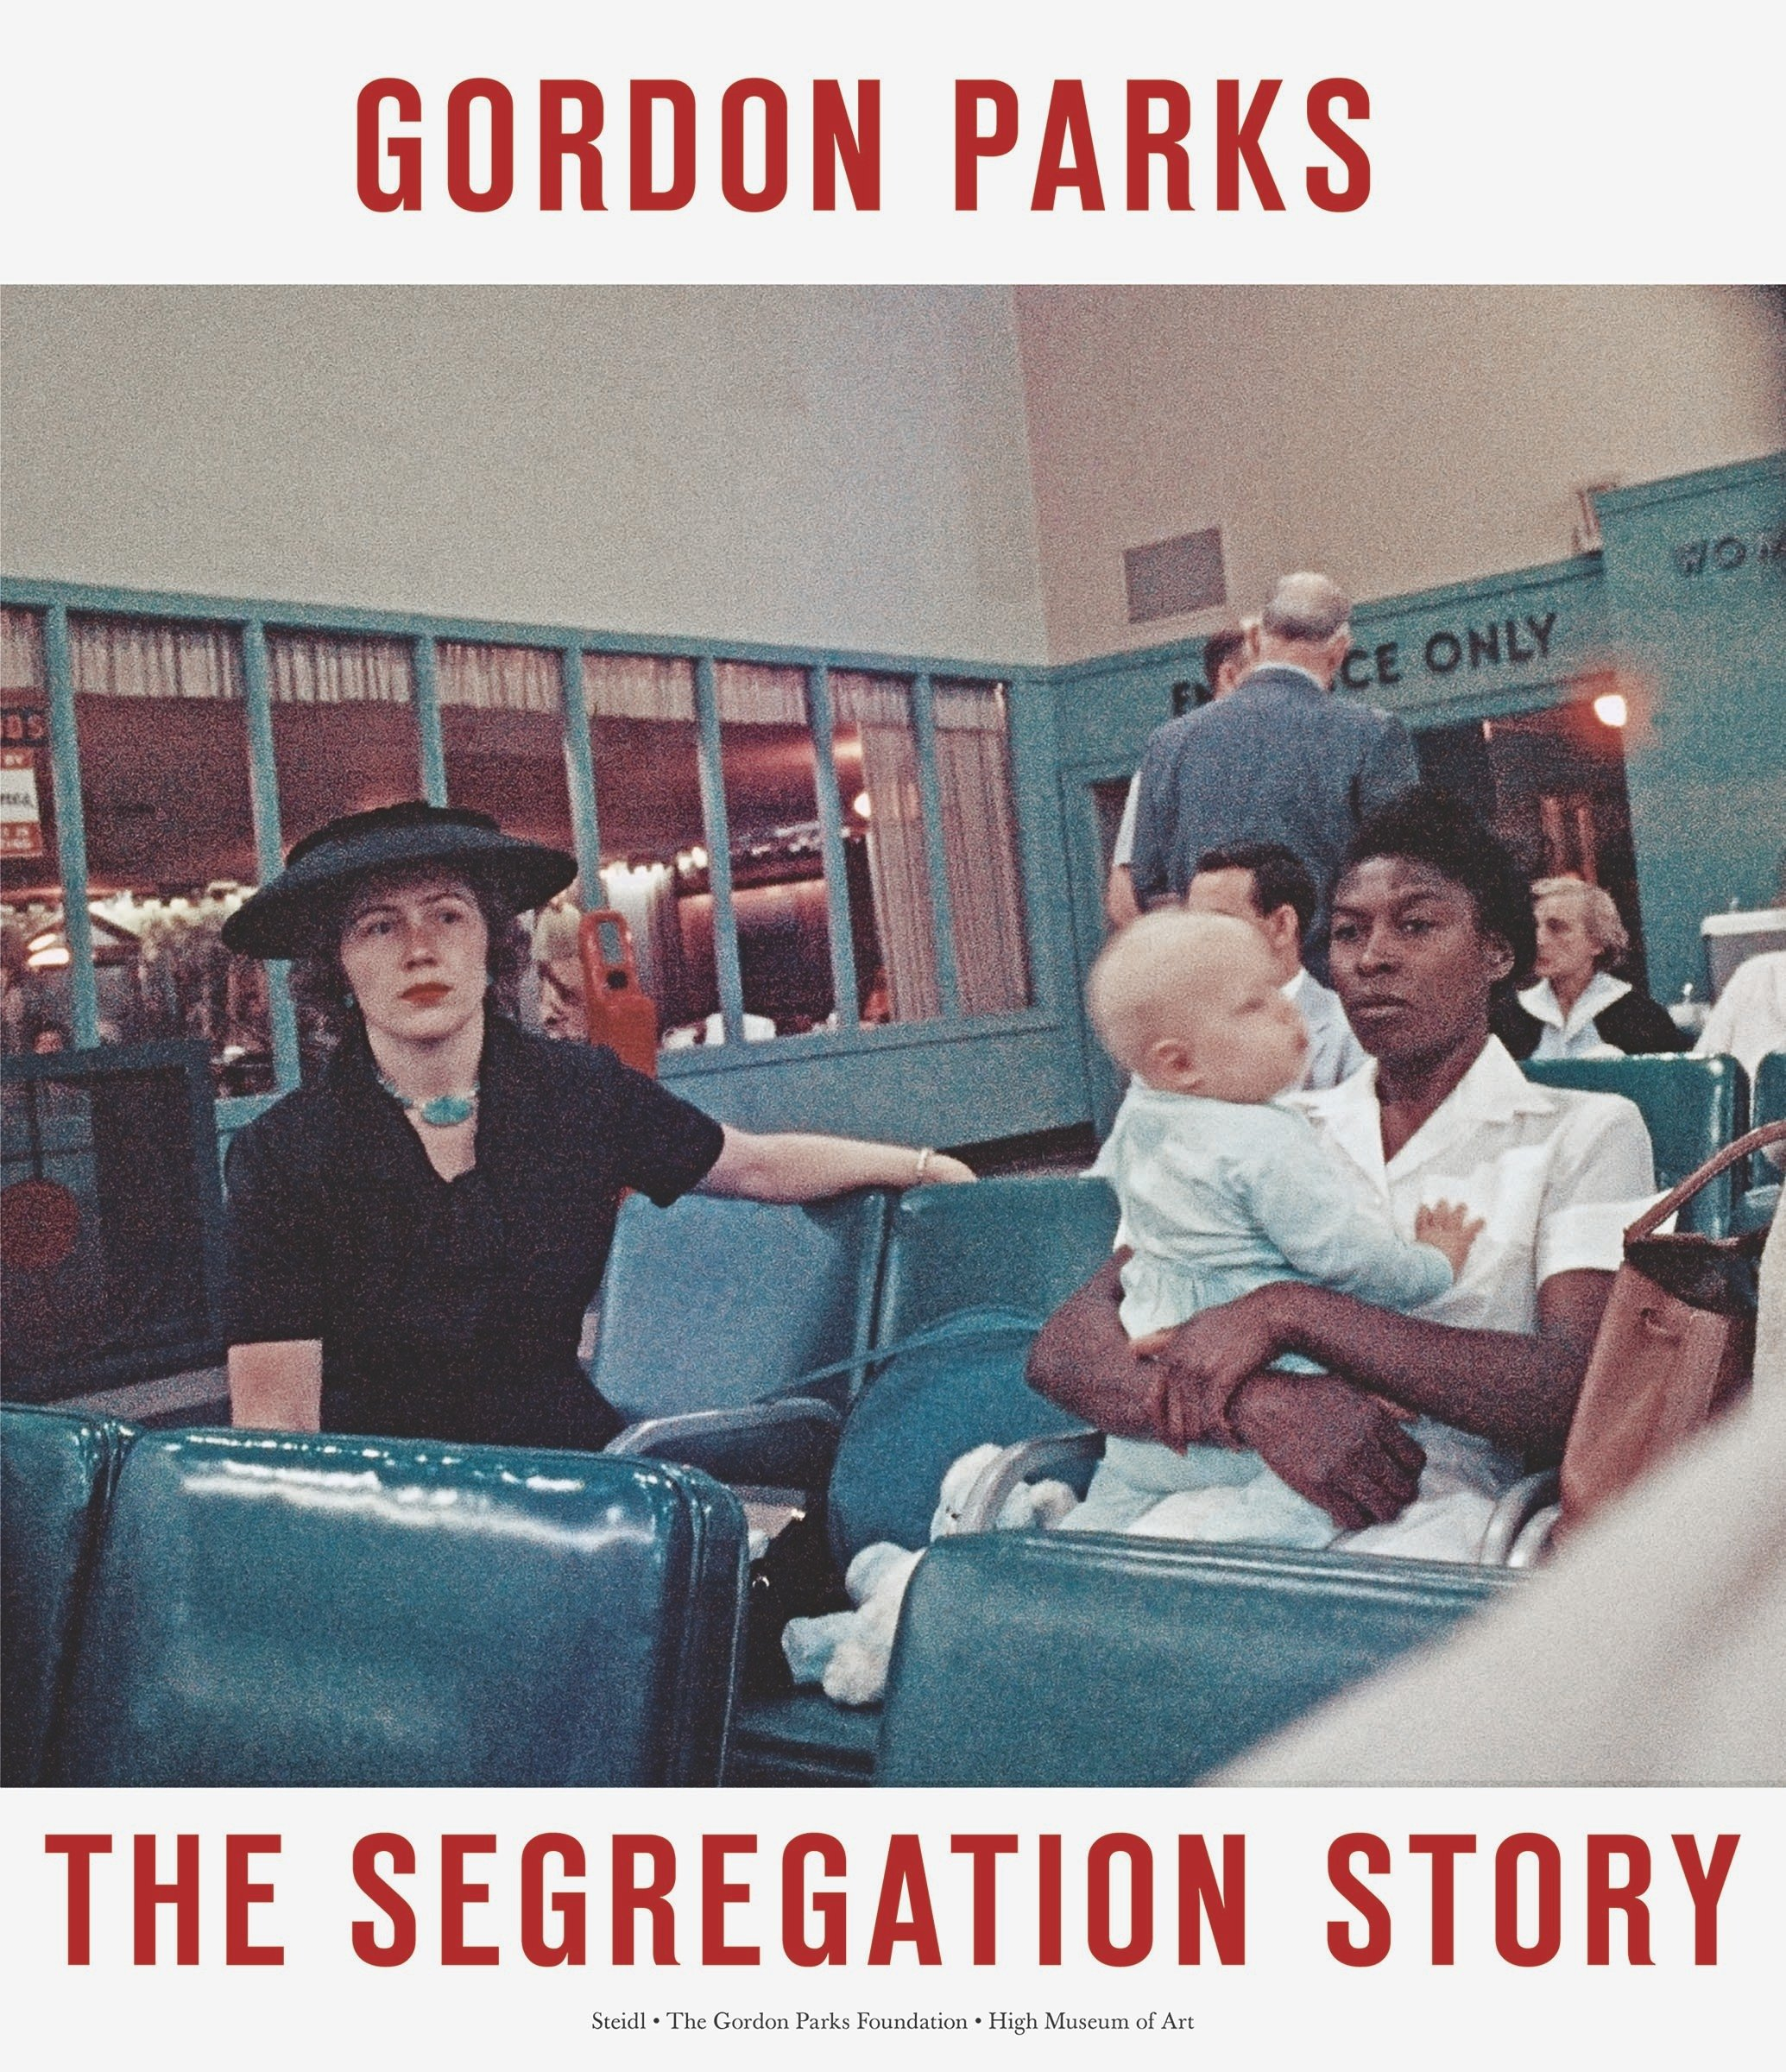 gordon parks life magazine photo essay When gordon parks set out to photograph school segregation for life magazine  in 1950, four years before brown v board of education, the self-taught artist and .